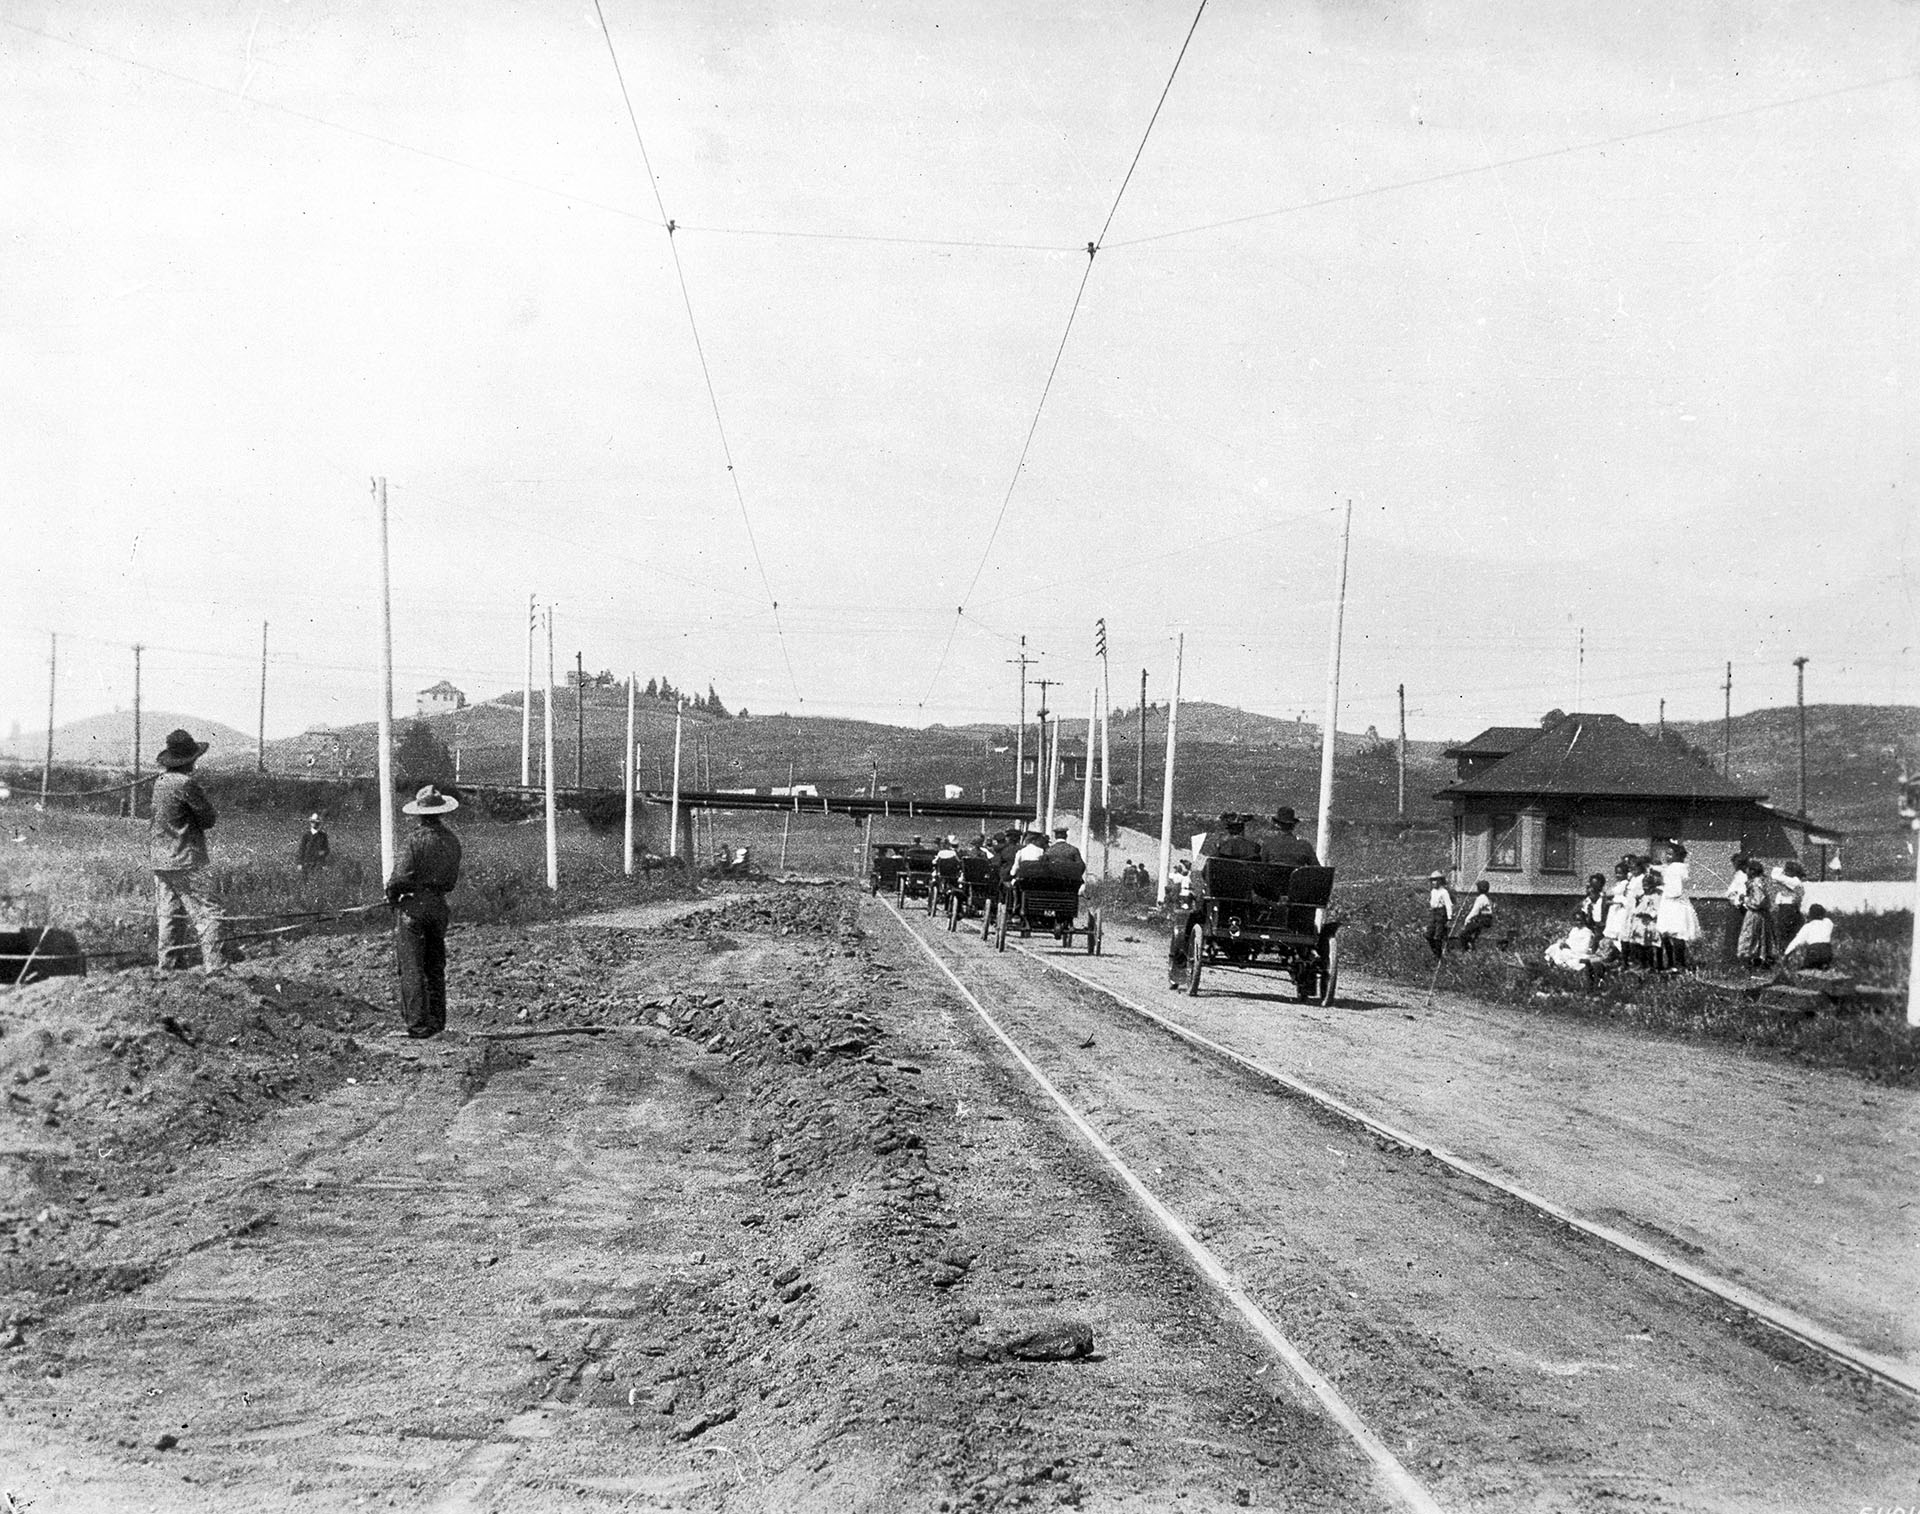 Lake Shore (now Glendale) south of Sunset in 1904